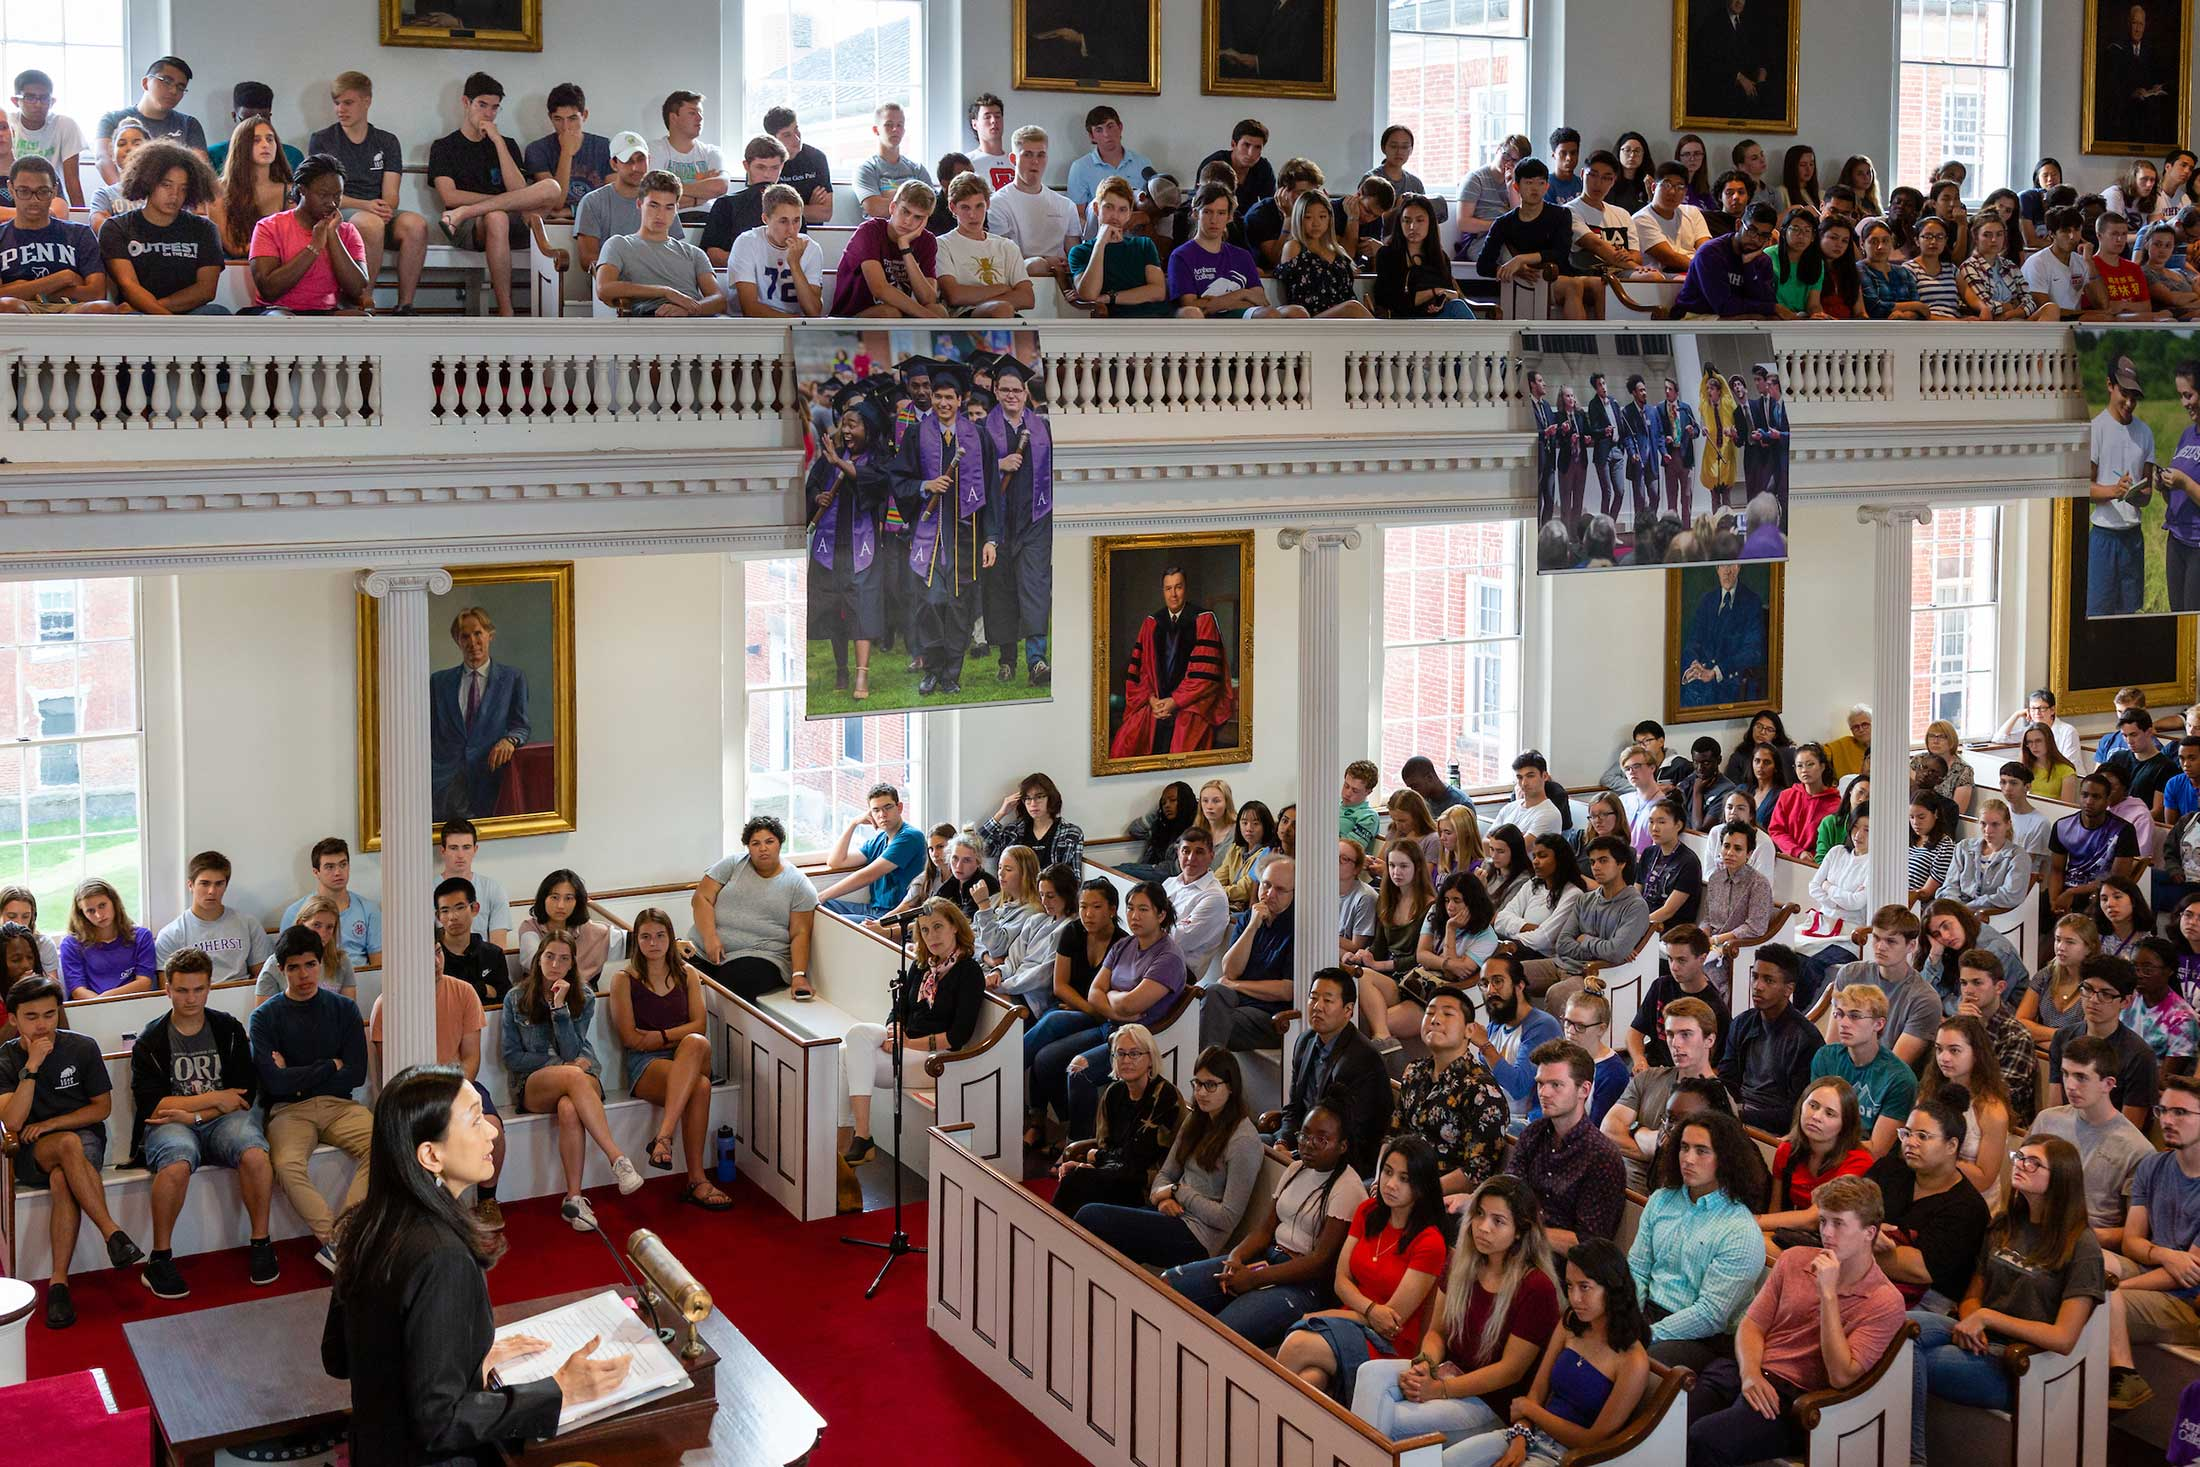 Min Jin Lee speaking to the incoming class.